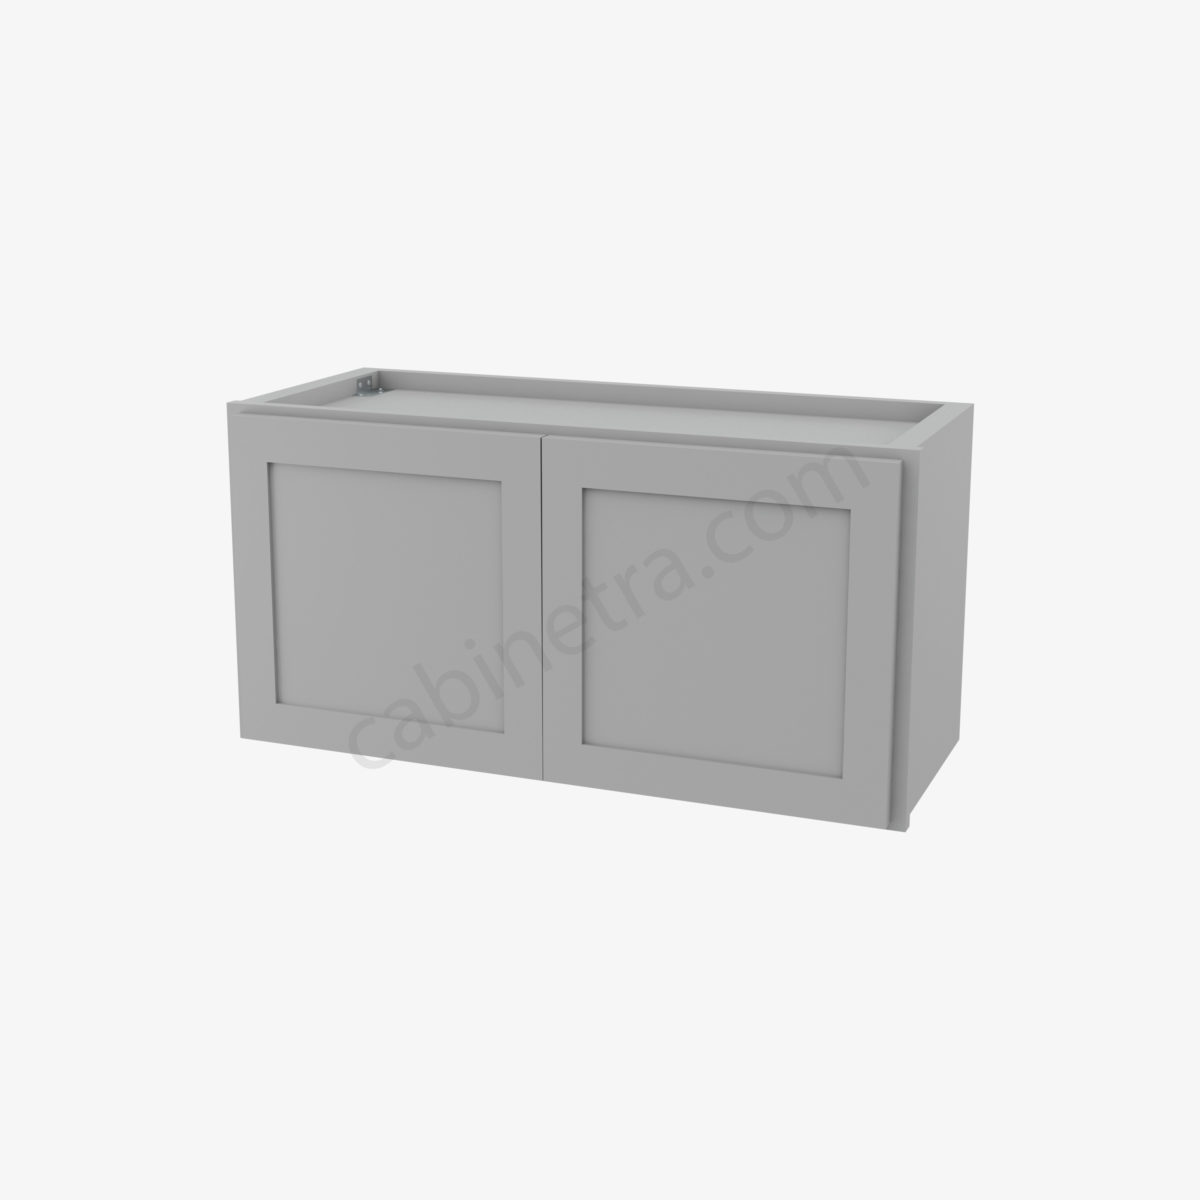 AB W3015B 0 Forevermark Lait Gray Shaker Cabinetra scaled